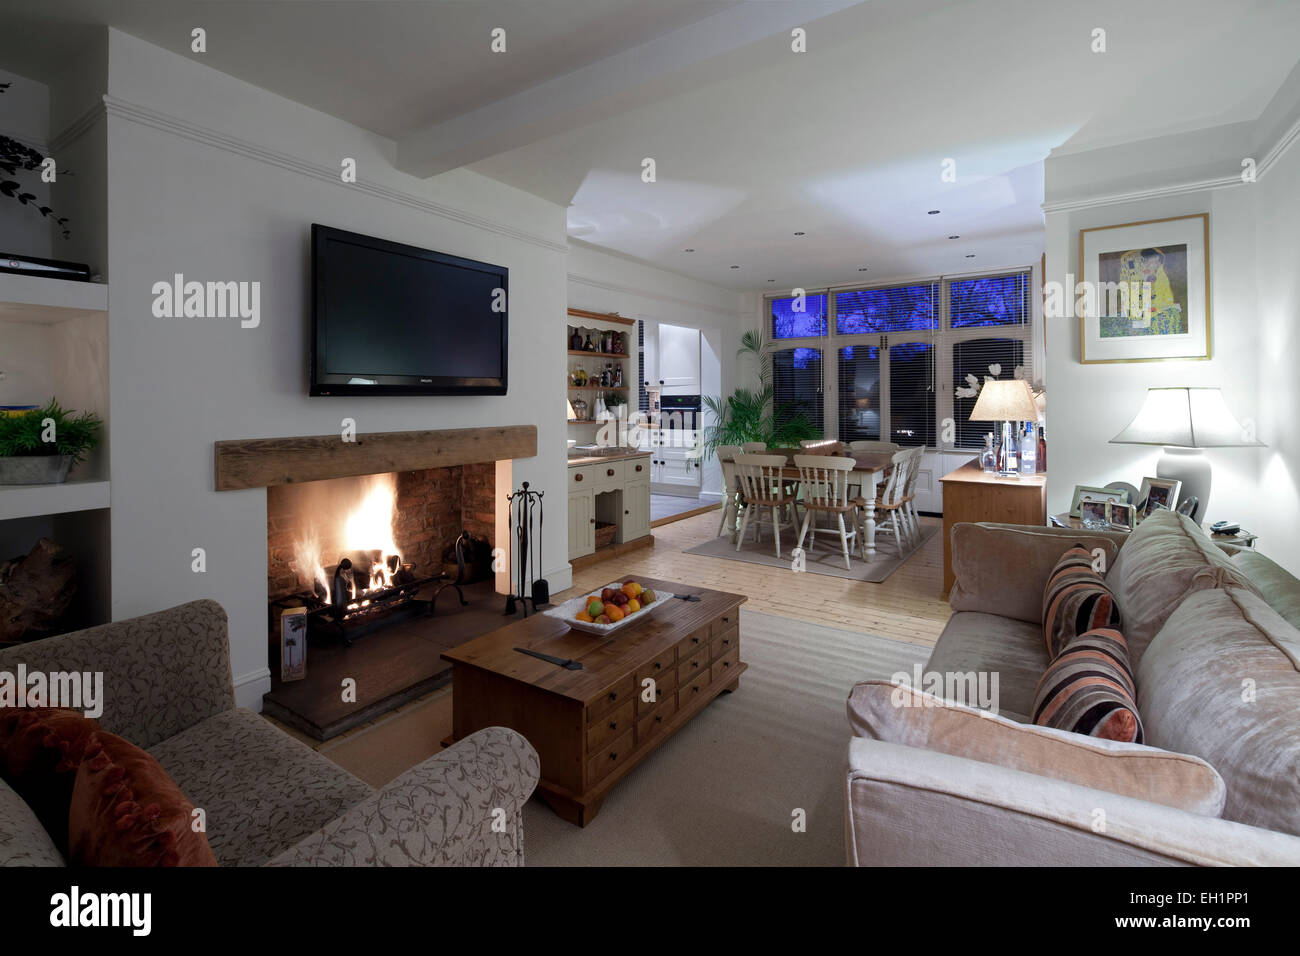 Open Plan Living And Dining Room With Plasma Screen Above Fireplace In Macclesfield Townhouse Cheshire England UK